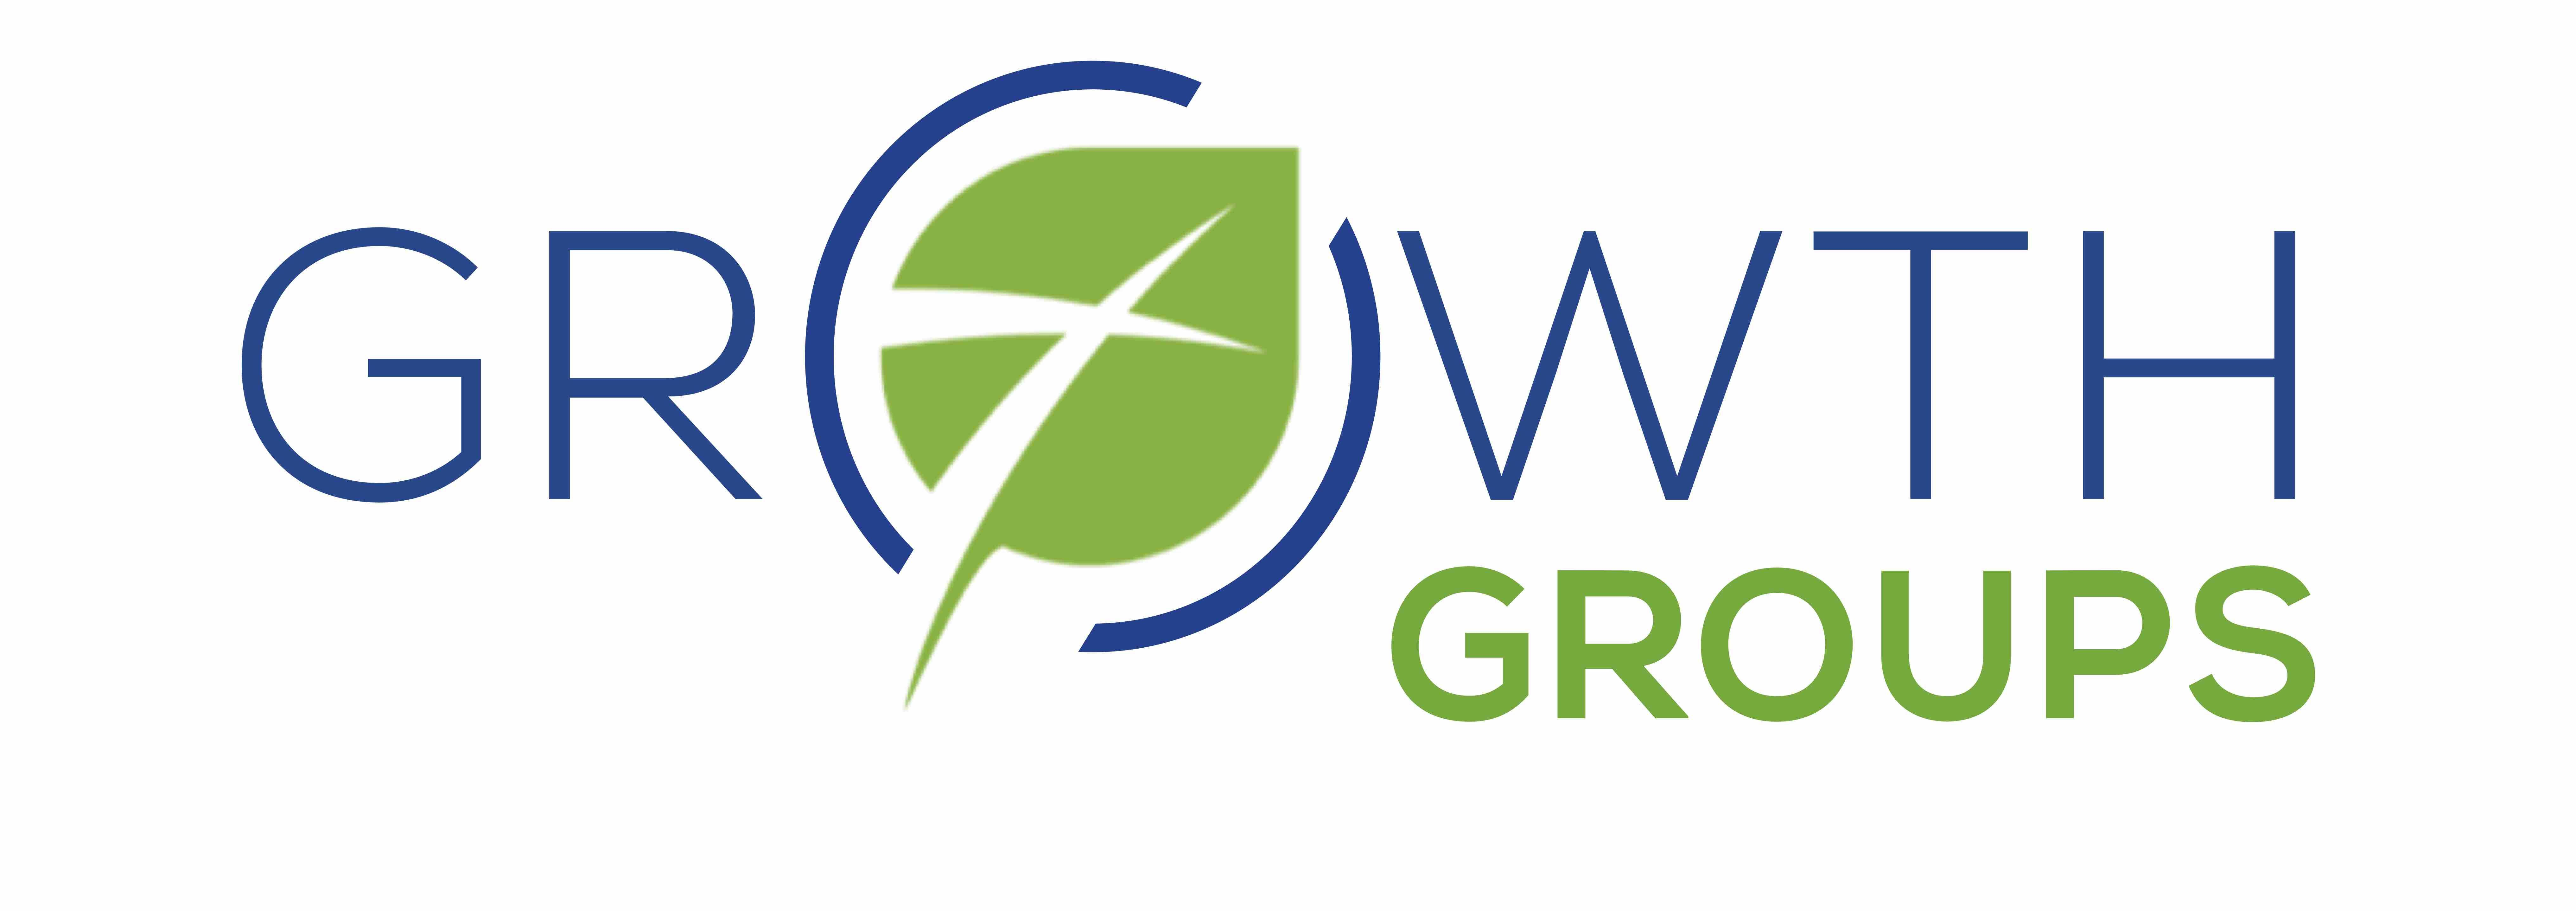 LS Growth Groups logo.web low res